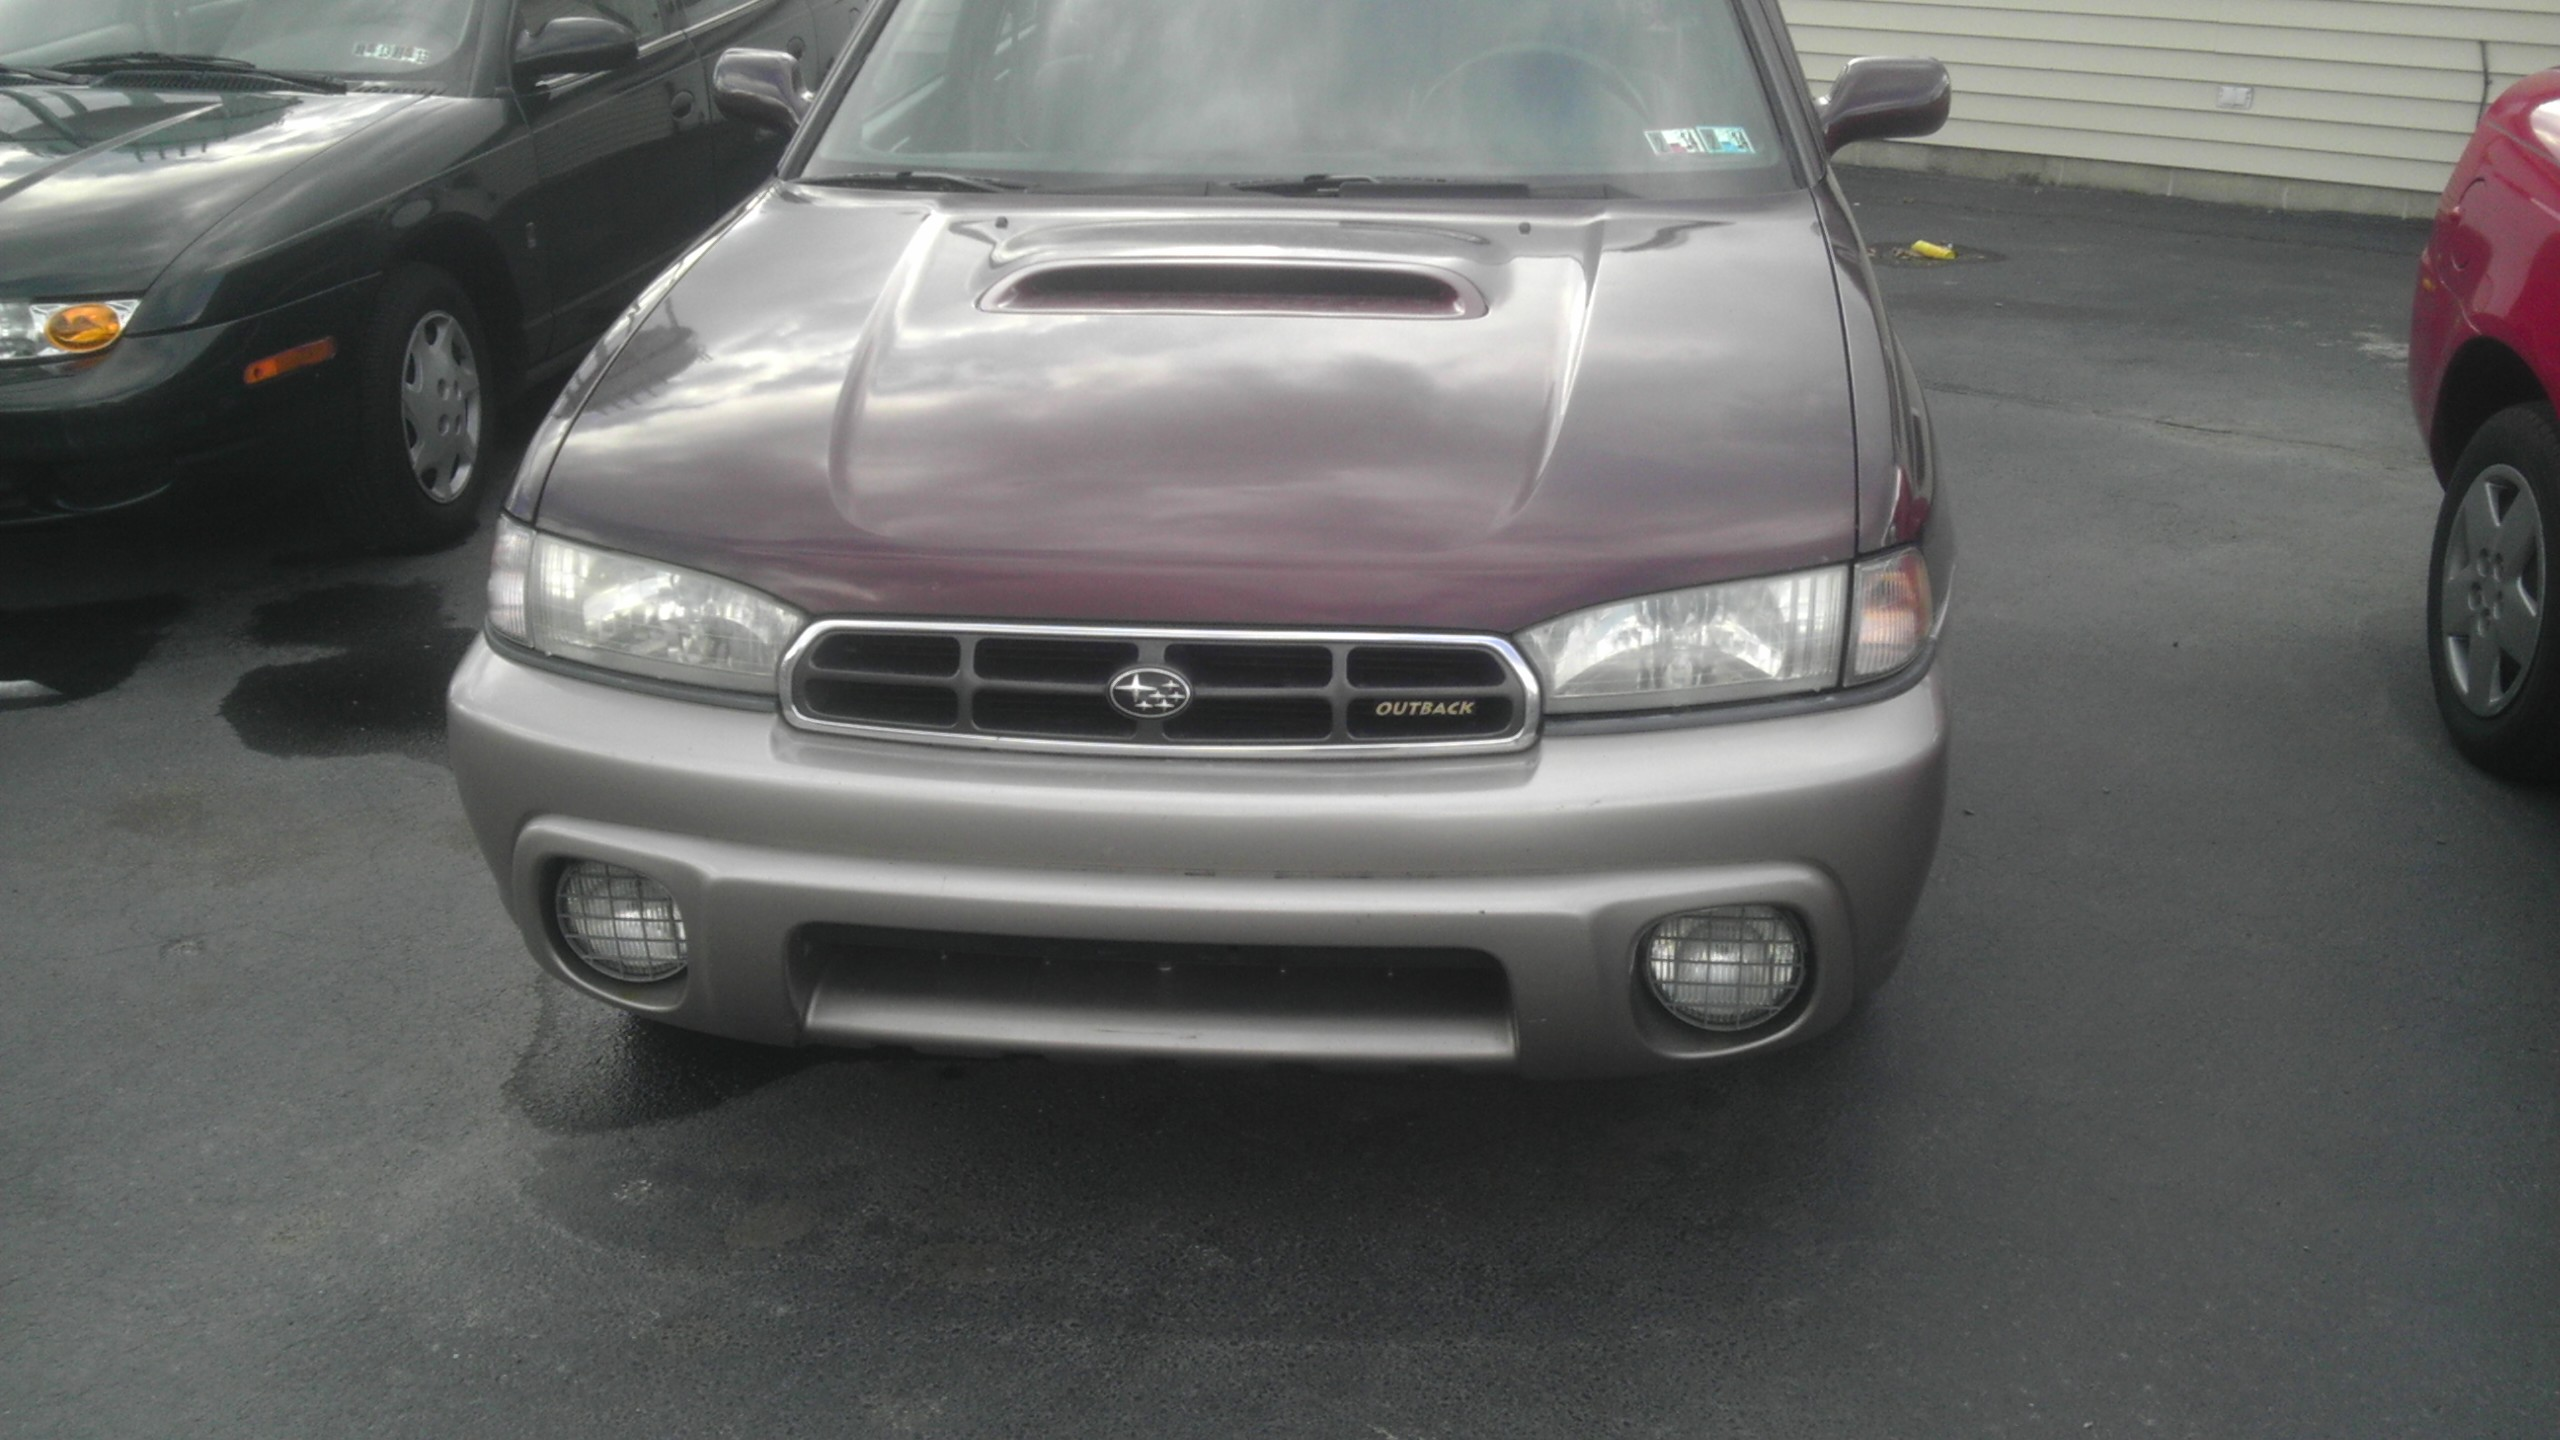 Maroon 1999 subaru legacy outback limited rims subaru outback maroon 1999 subaru legacy outback limited rims subaru outback subaru outback forums vanachro Image collections